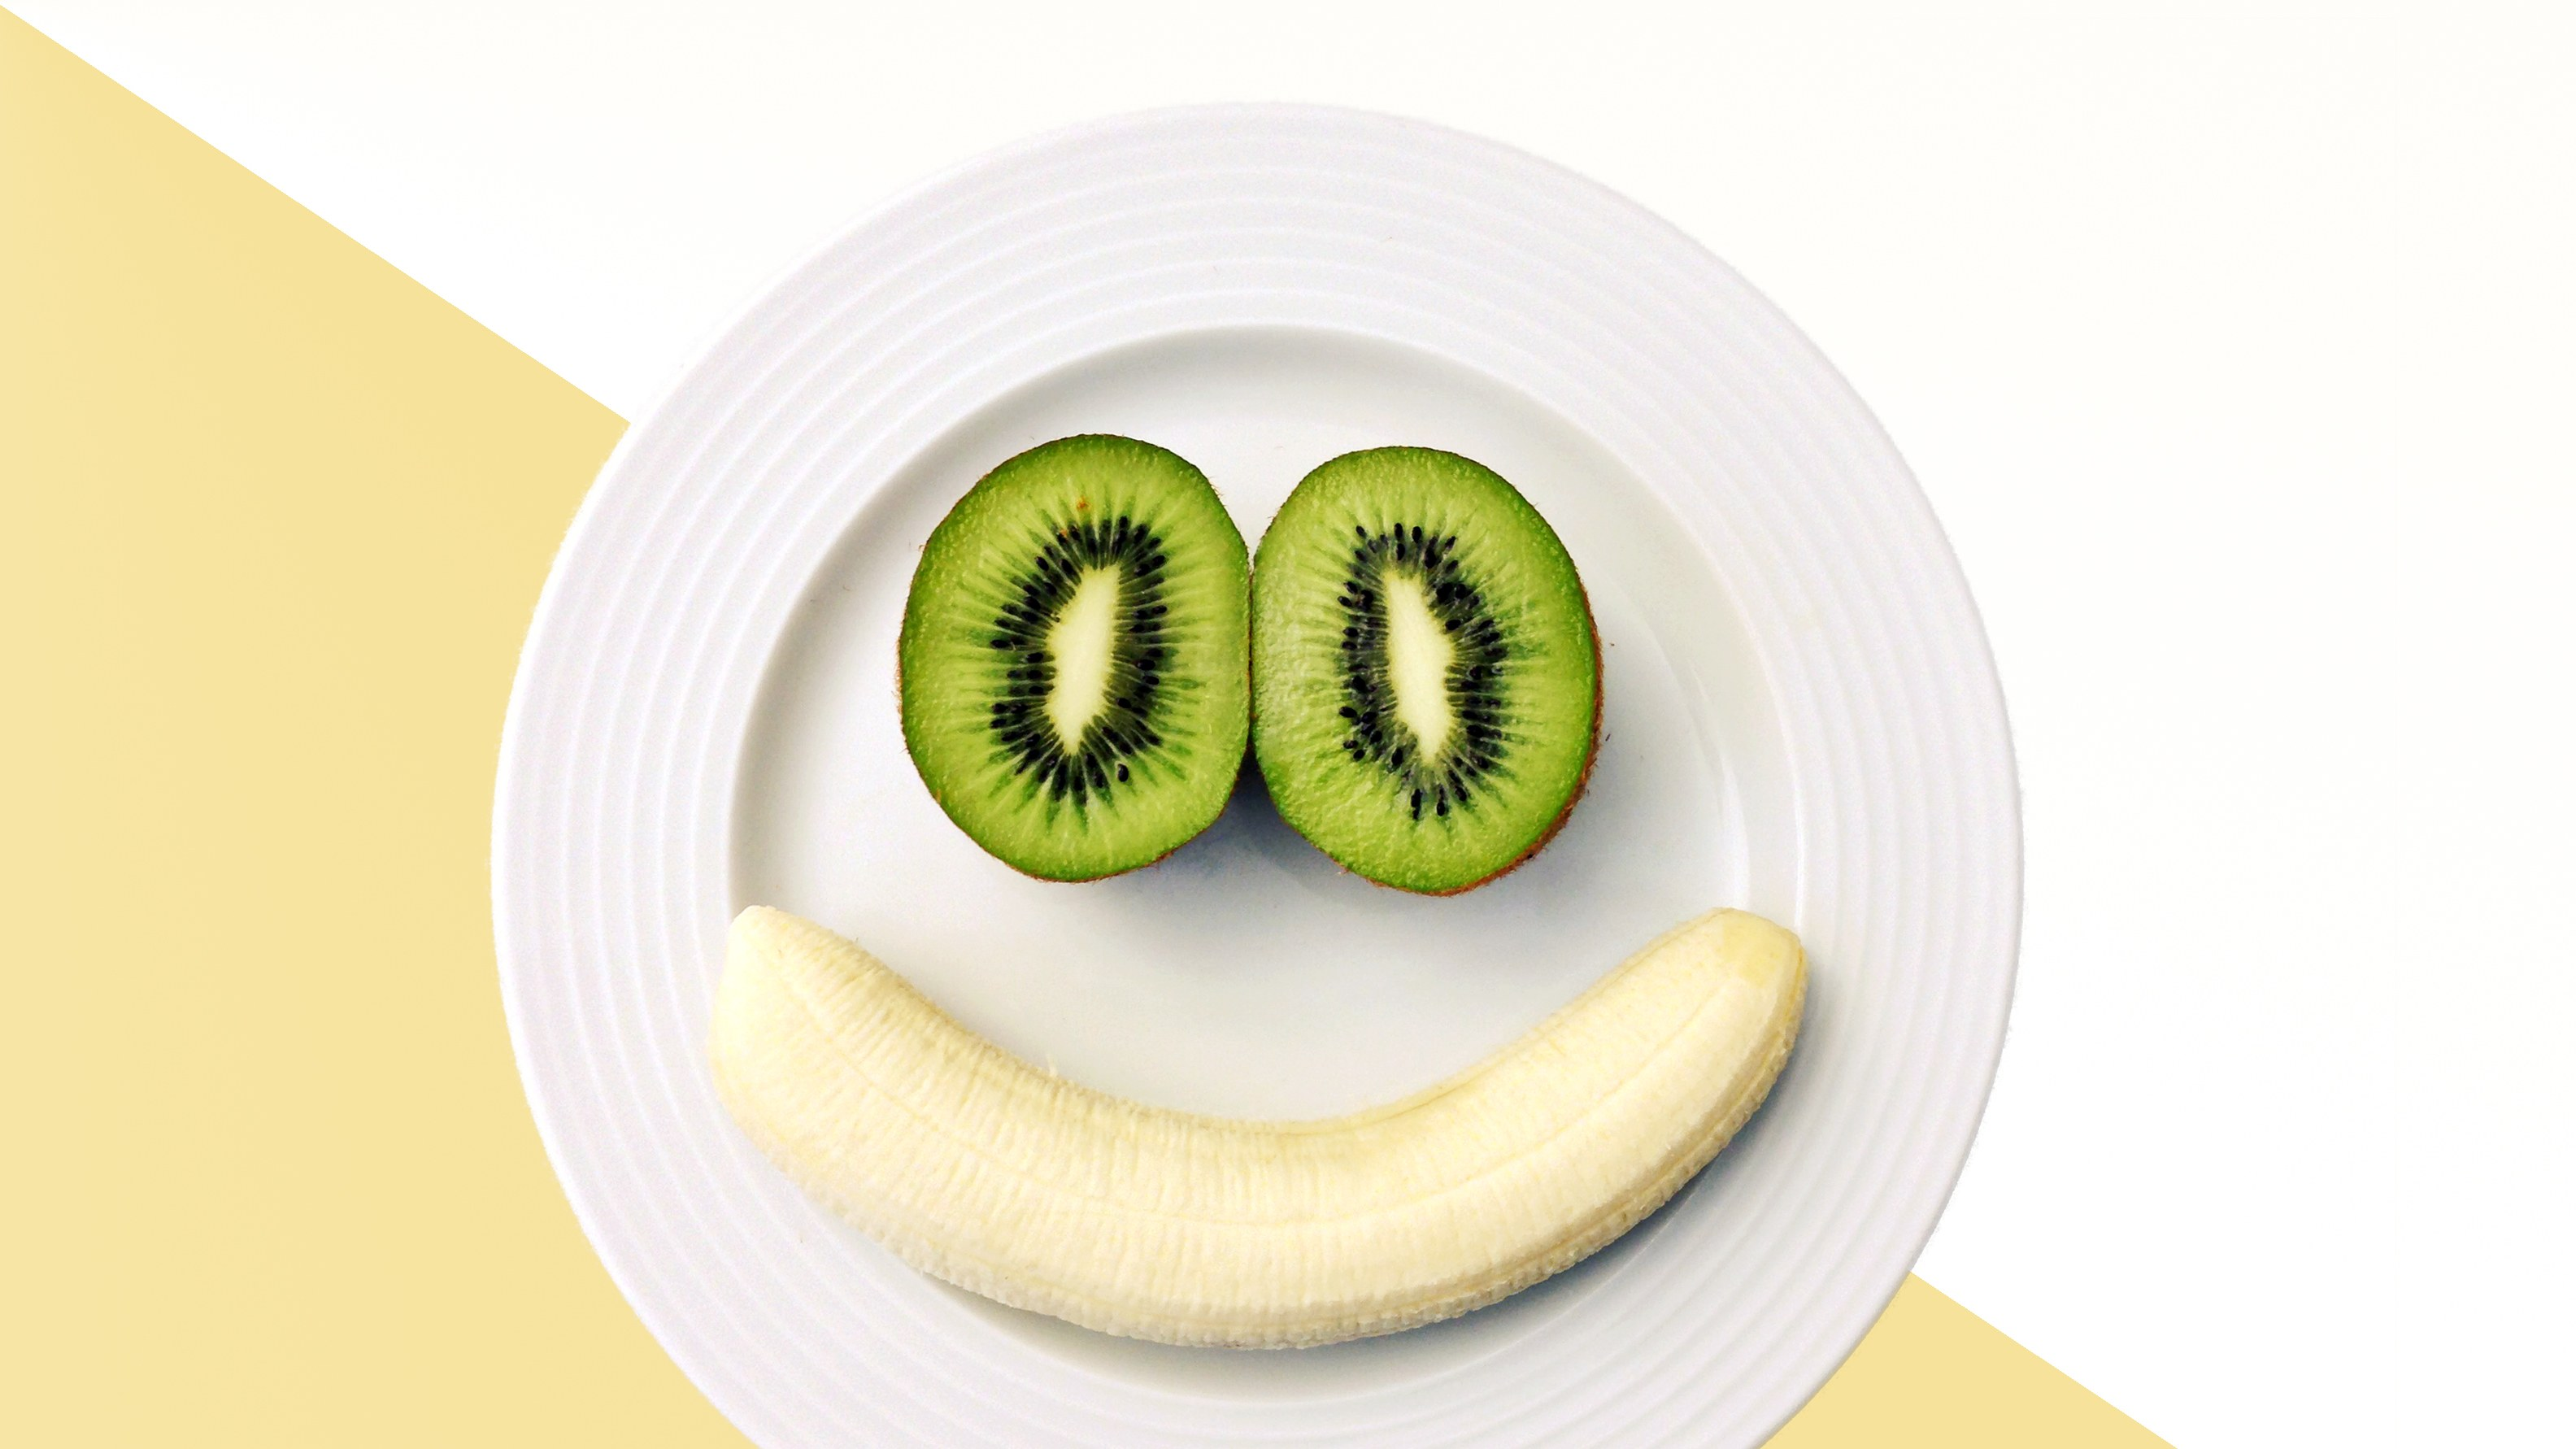 Banana and Kiwi fruit